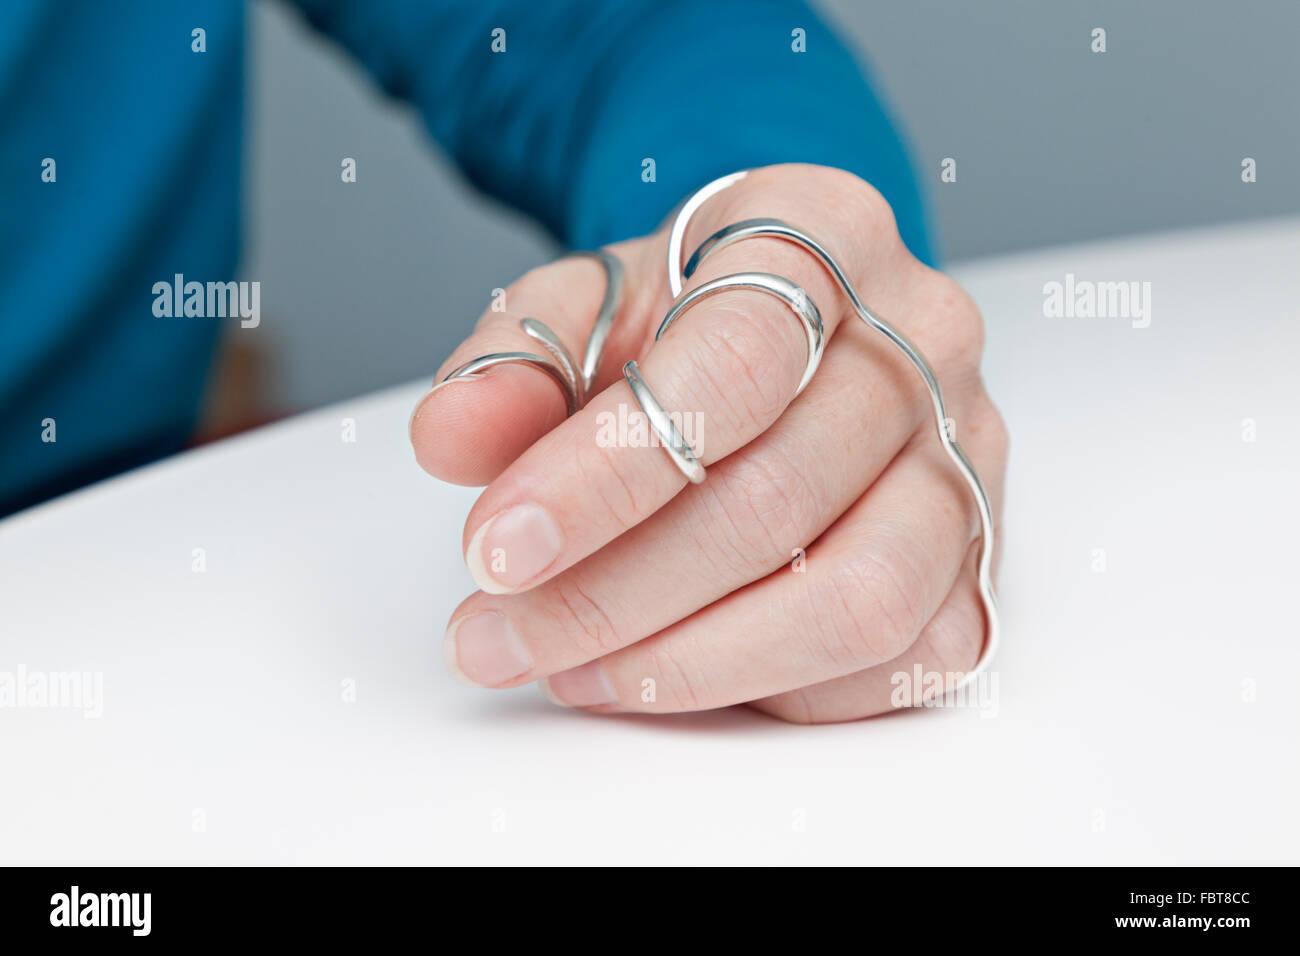 Sterling Silver Ring Stock Photos & Sterling Silver Ring Stock ...